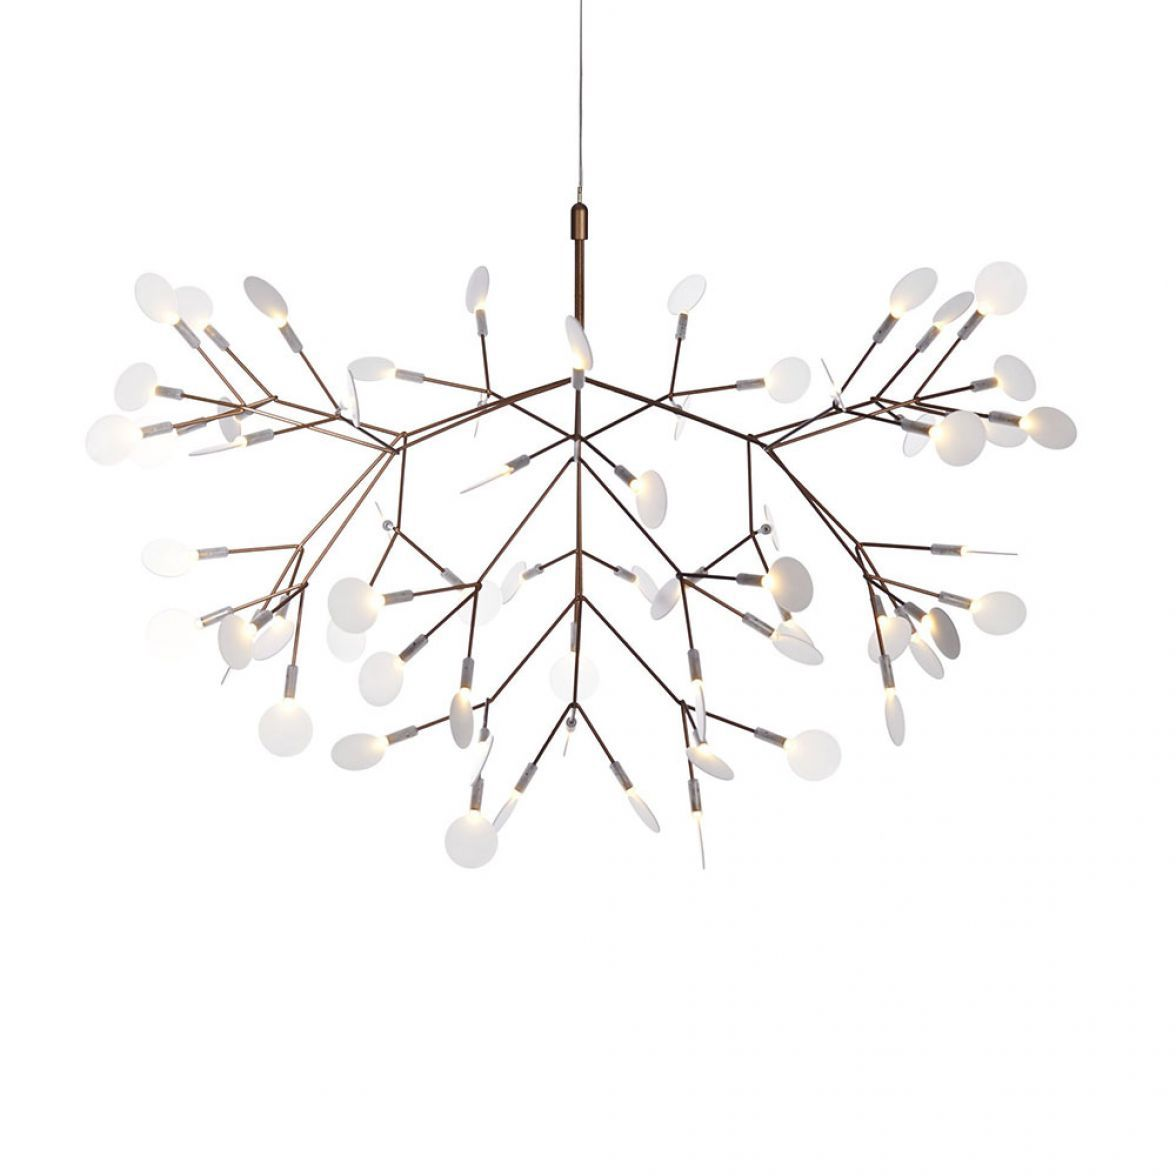 Heracleum II suspension lamps